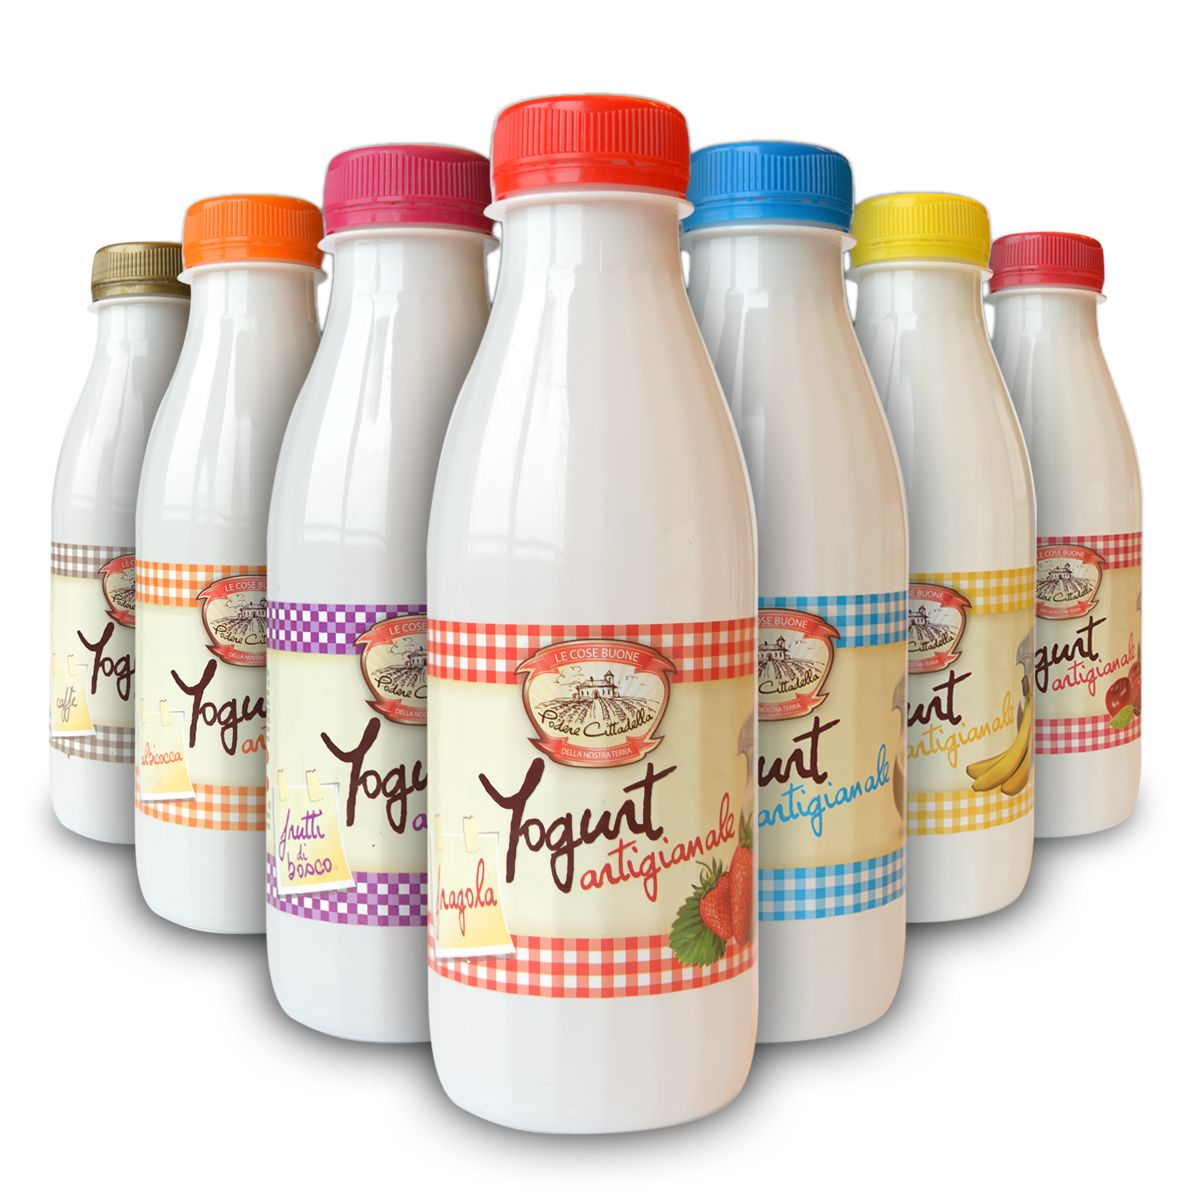 Yogurt Cremoso di gusti assortiti 500g - 12 pz